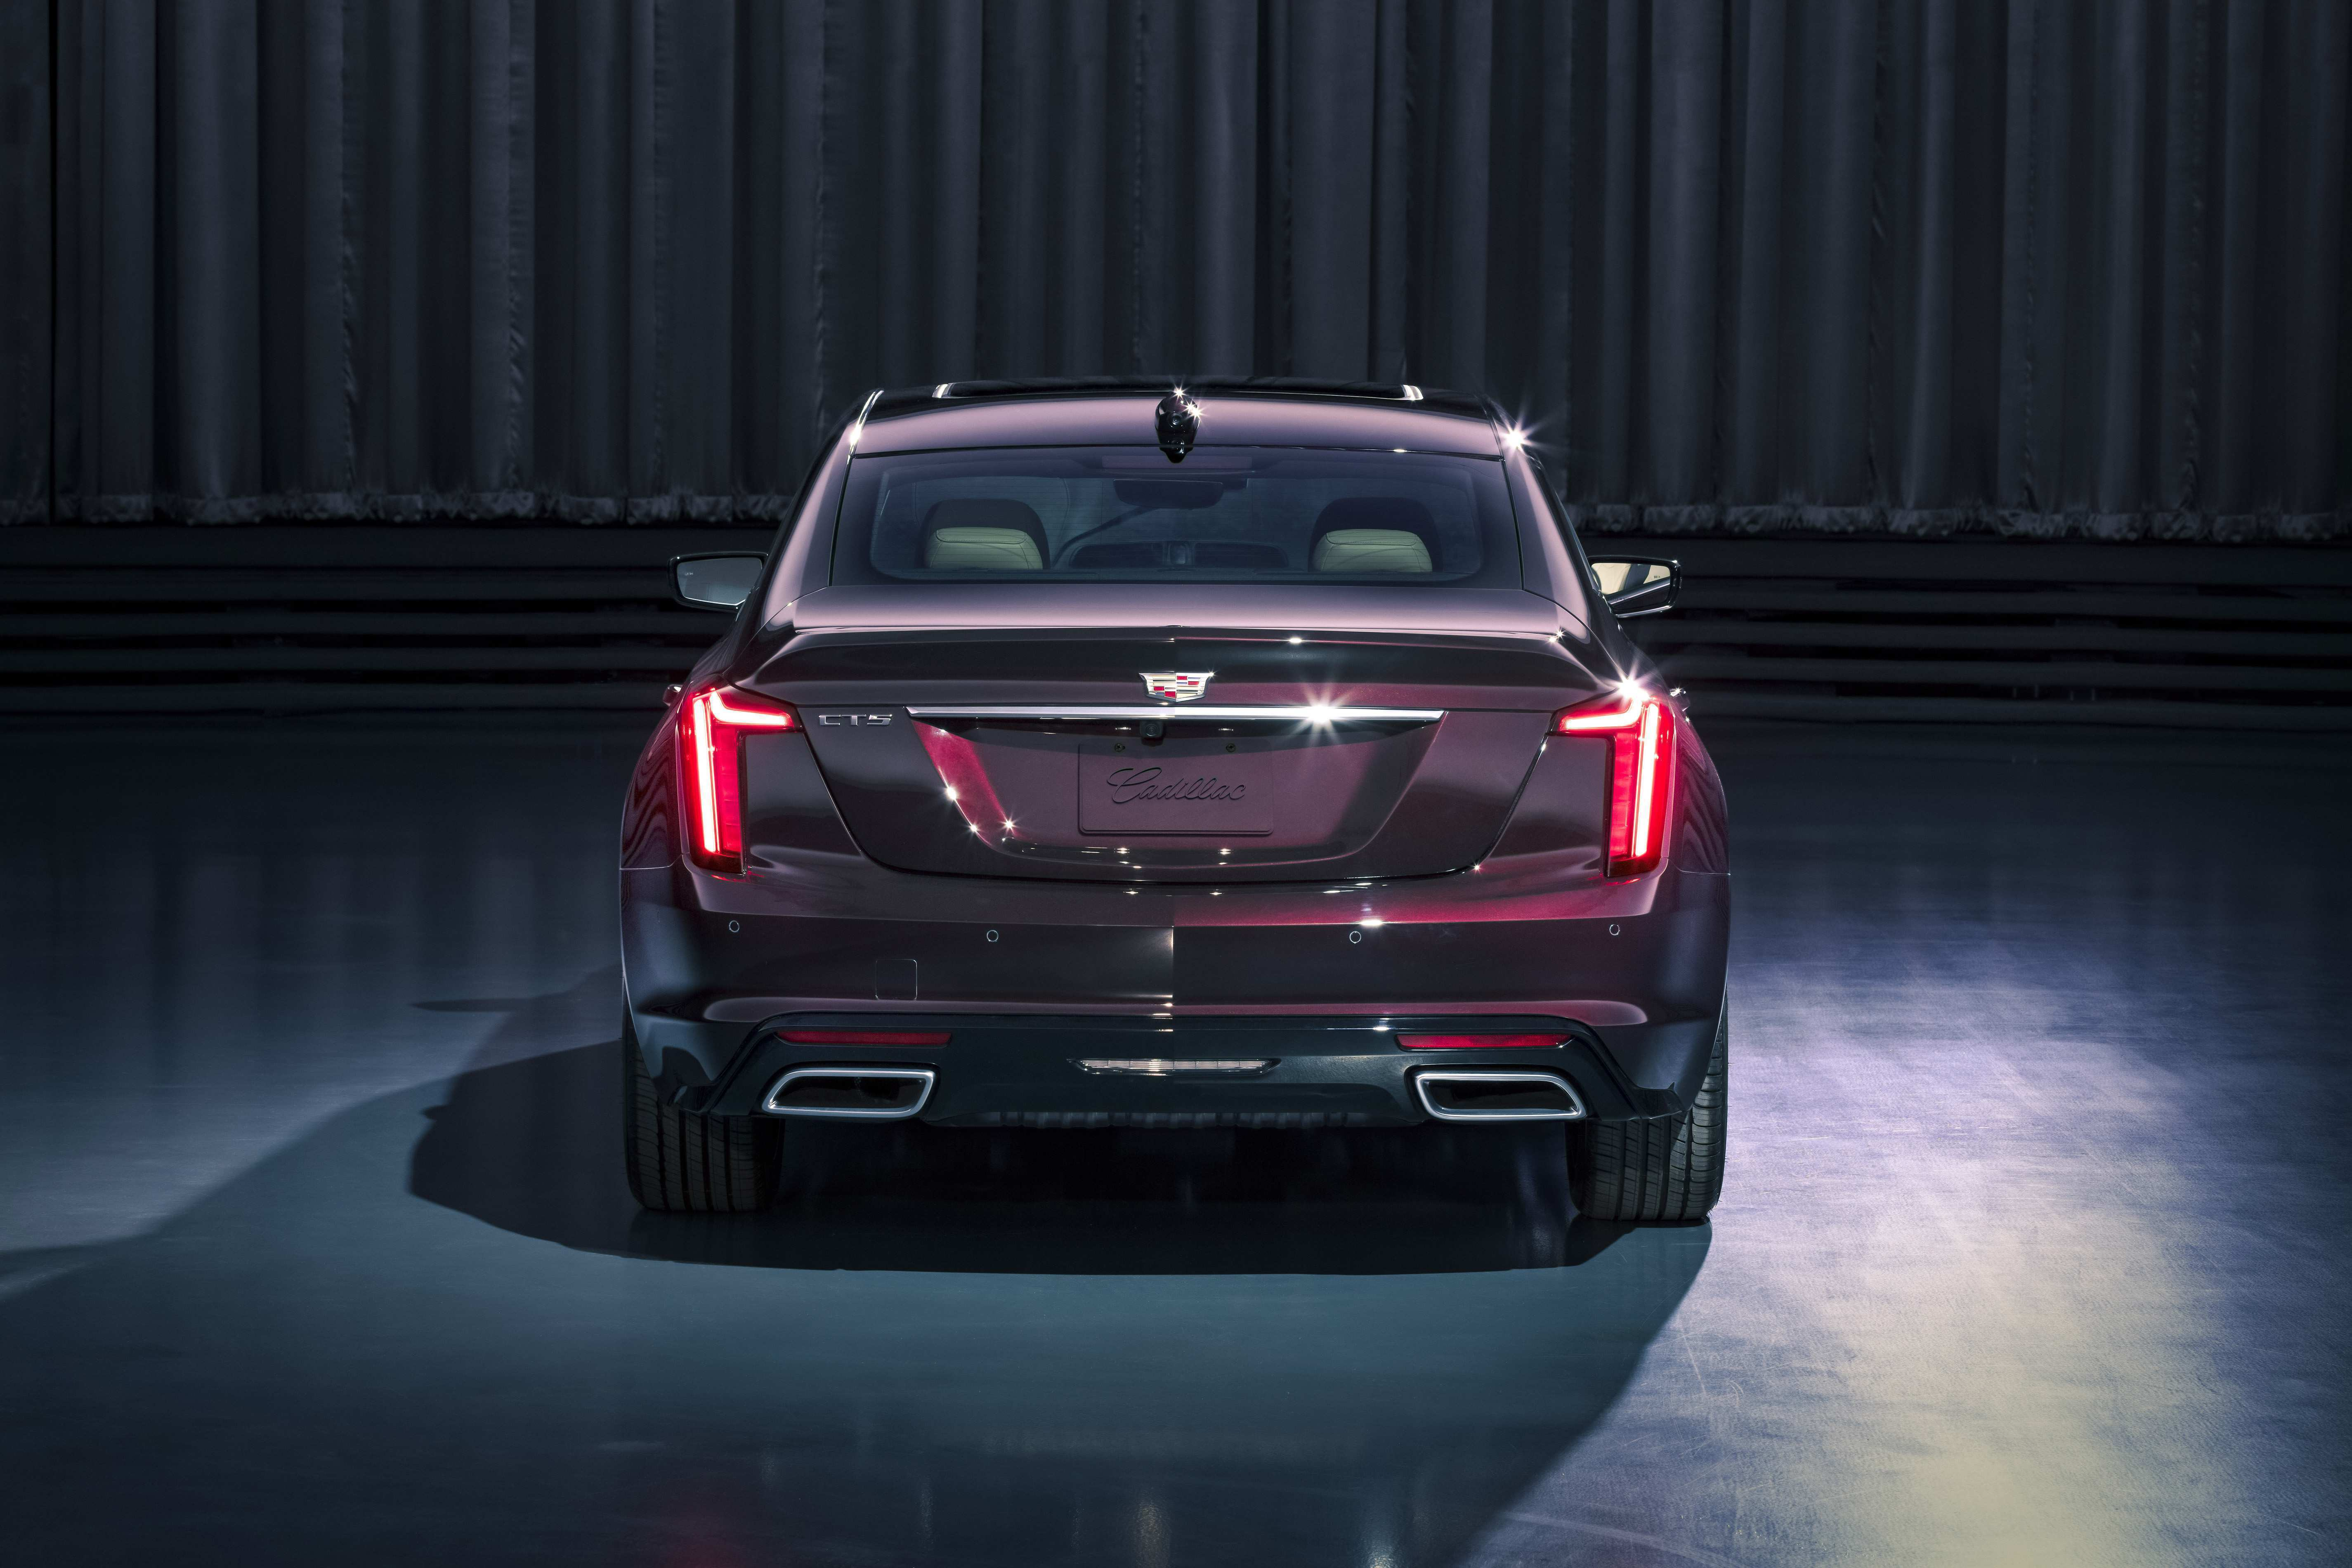 94 The Best 2020 Cadillac Ct5 Horsepower Picture